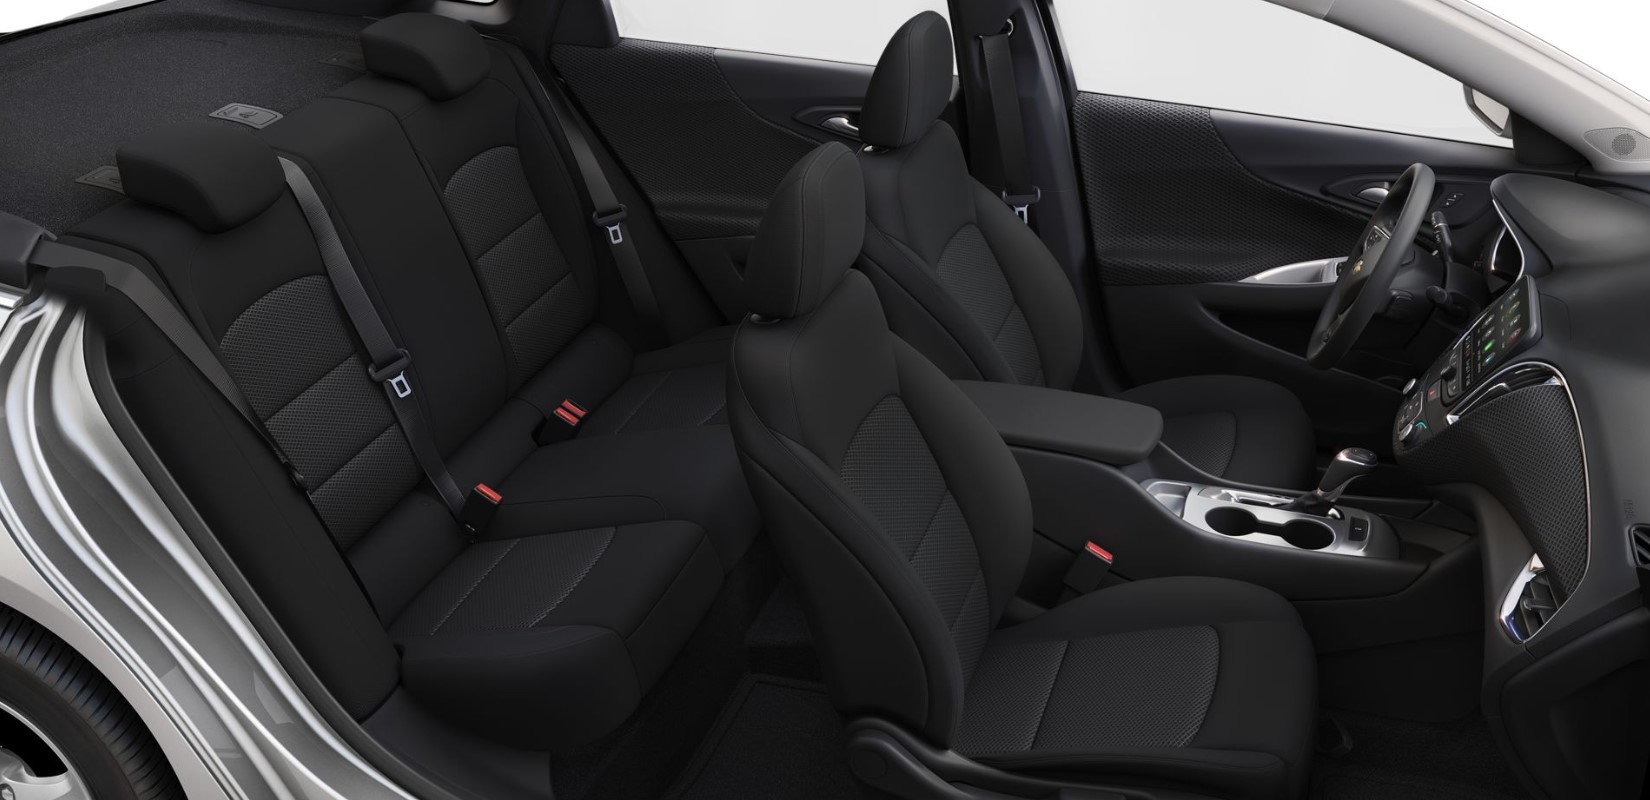 2019 Chevrolet Malibu LS Shadow Interior Seating Picture